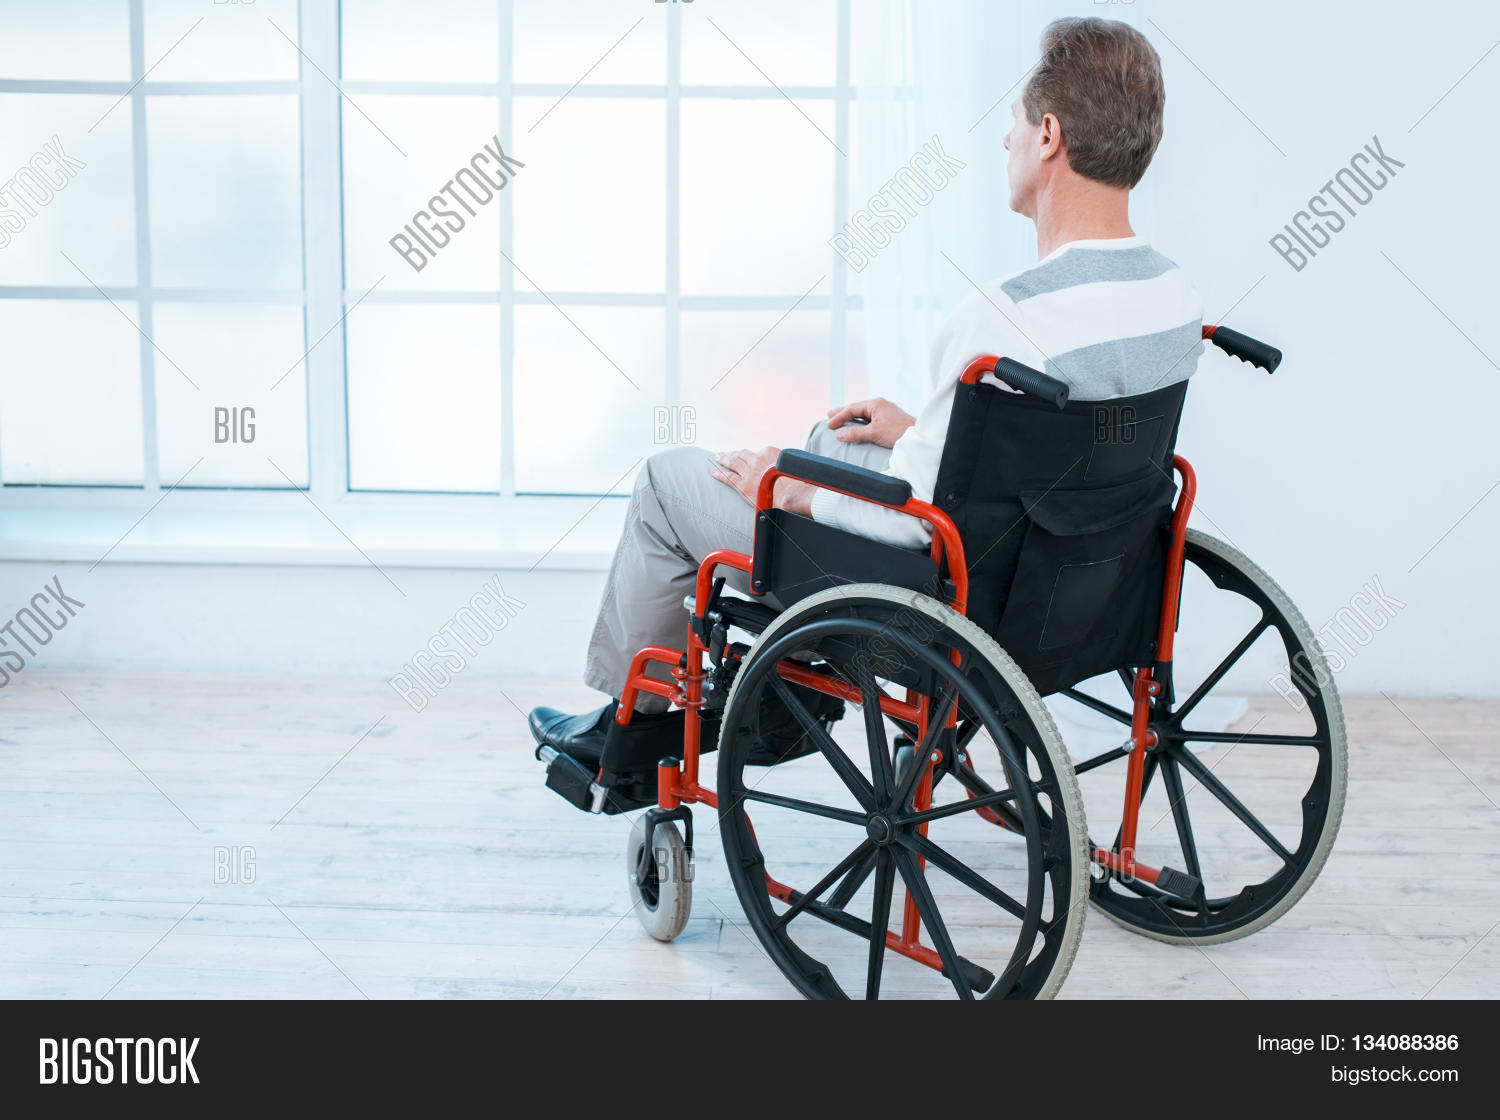 wheelchair man s shaped dining chairs adult image photo free trial bigstock in white interior with big window sad looking at